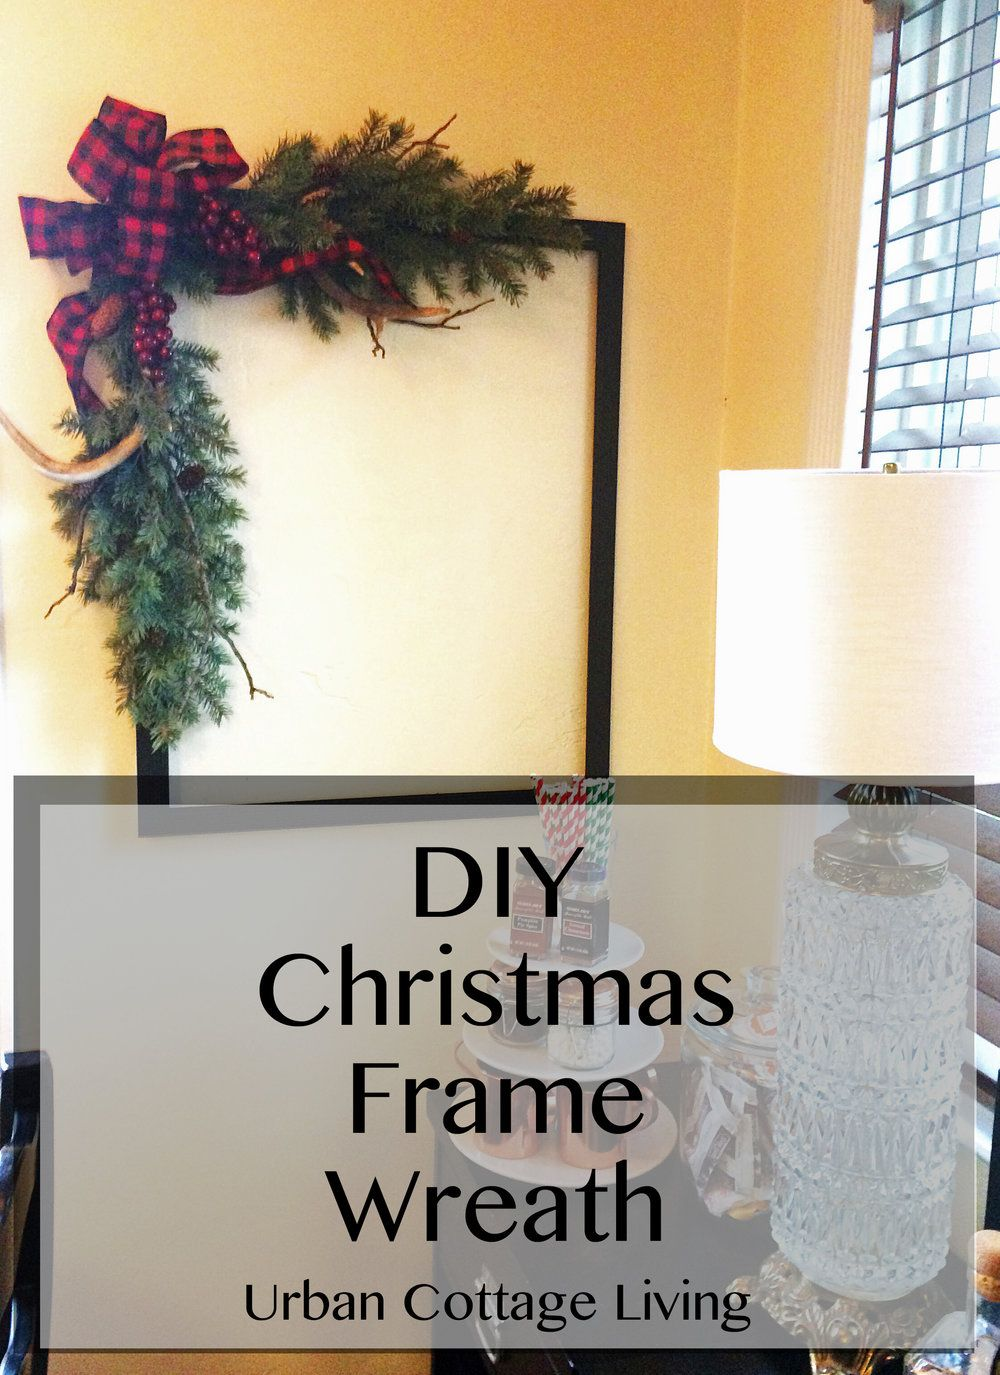 urban cottage living diy christmas frame wreath | small house living